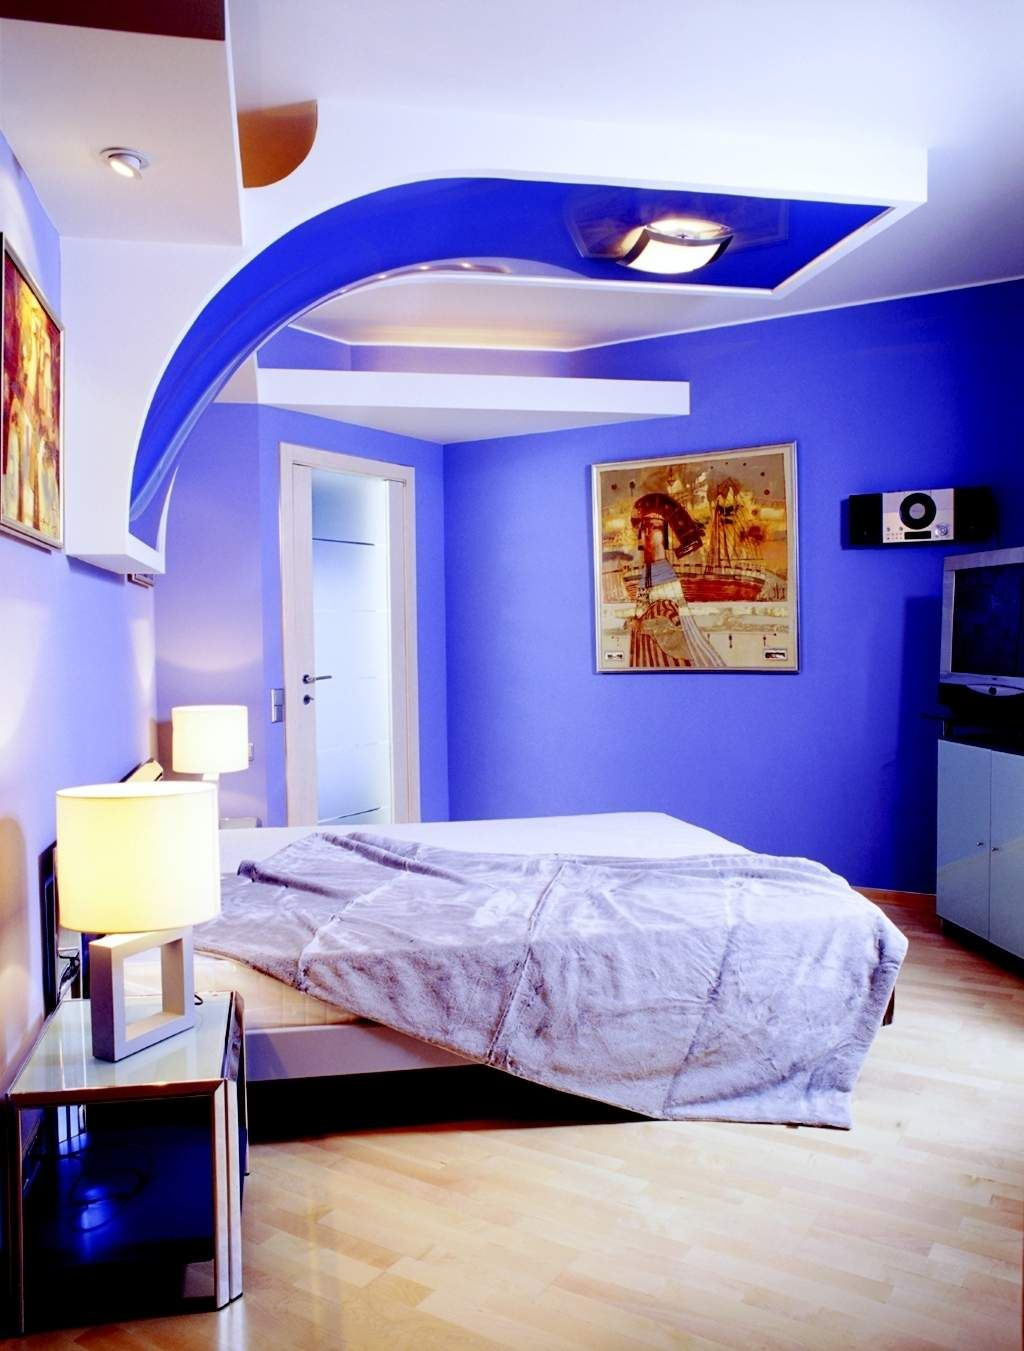 kids bedroom futuristic design of boys bedroom in bright blue and white  color scheme cool color. kids bedroom futuristic design of boys bedroom in bright blue and